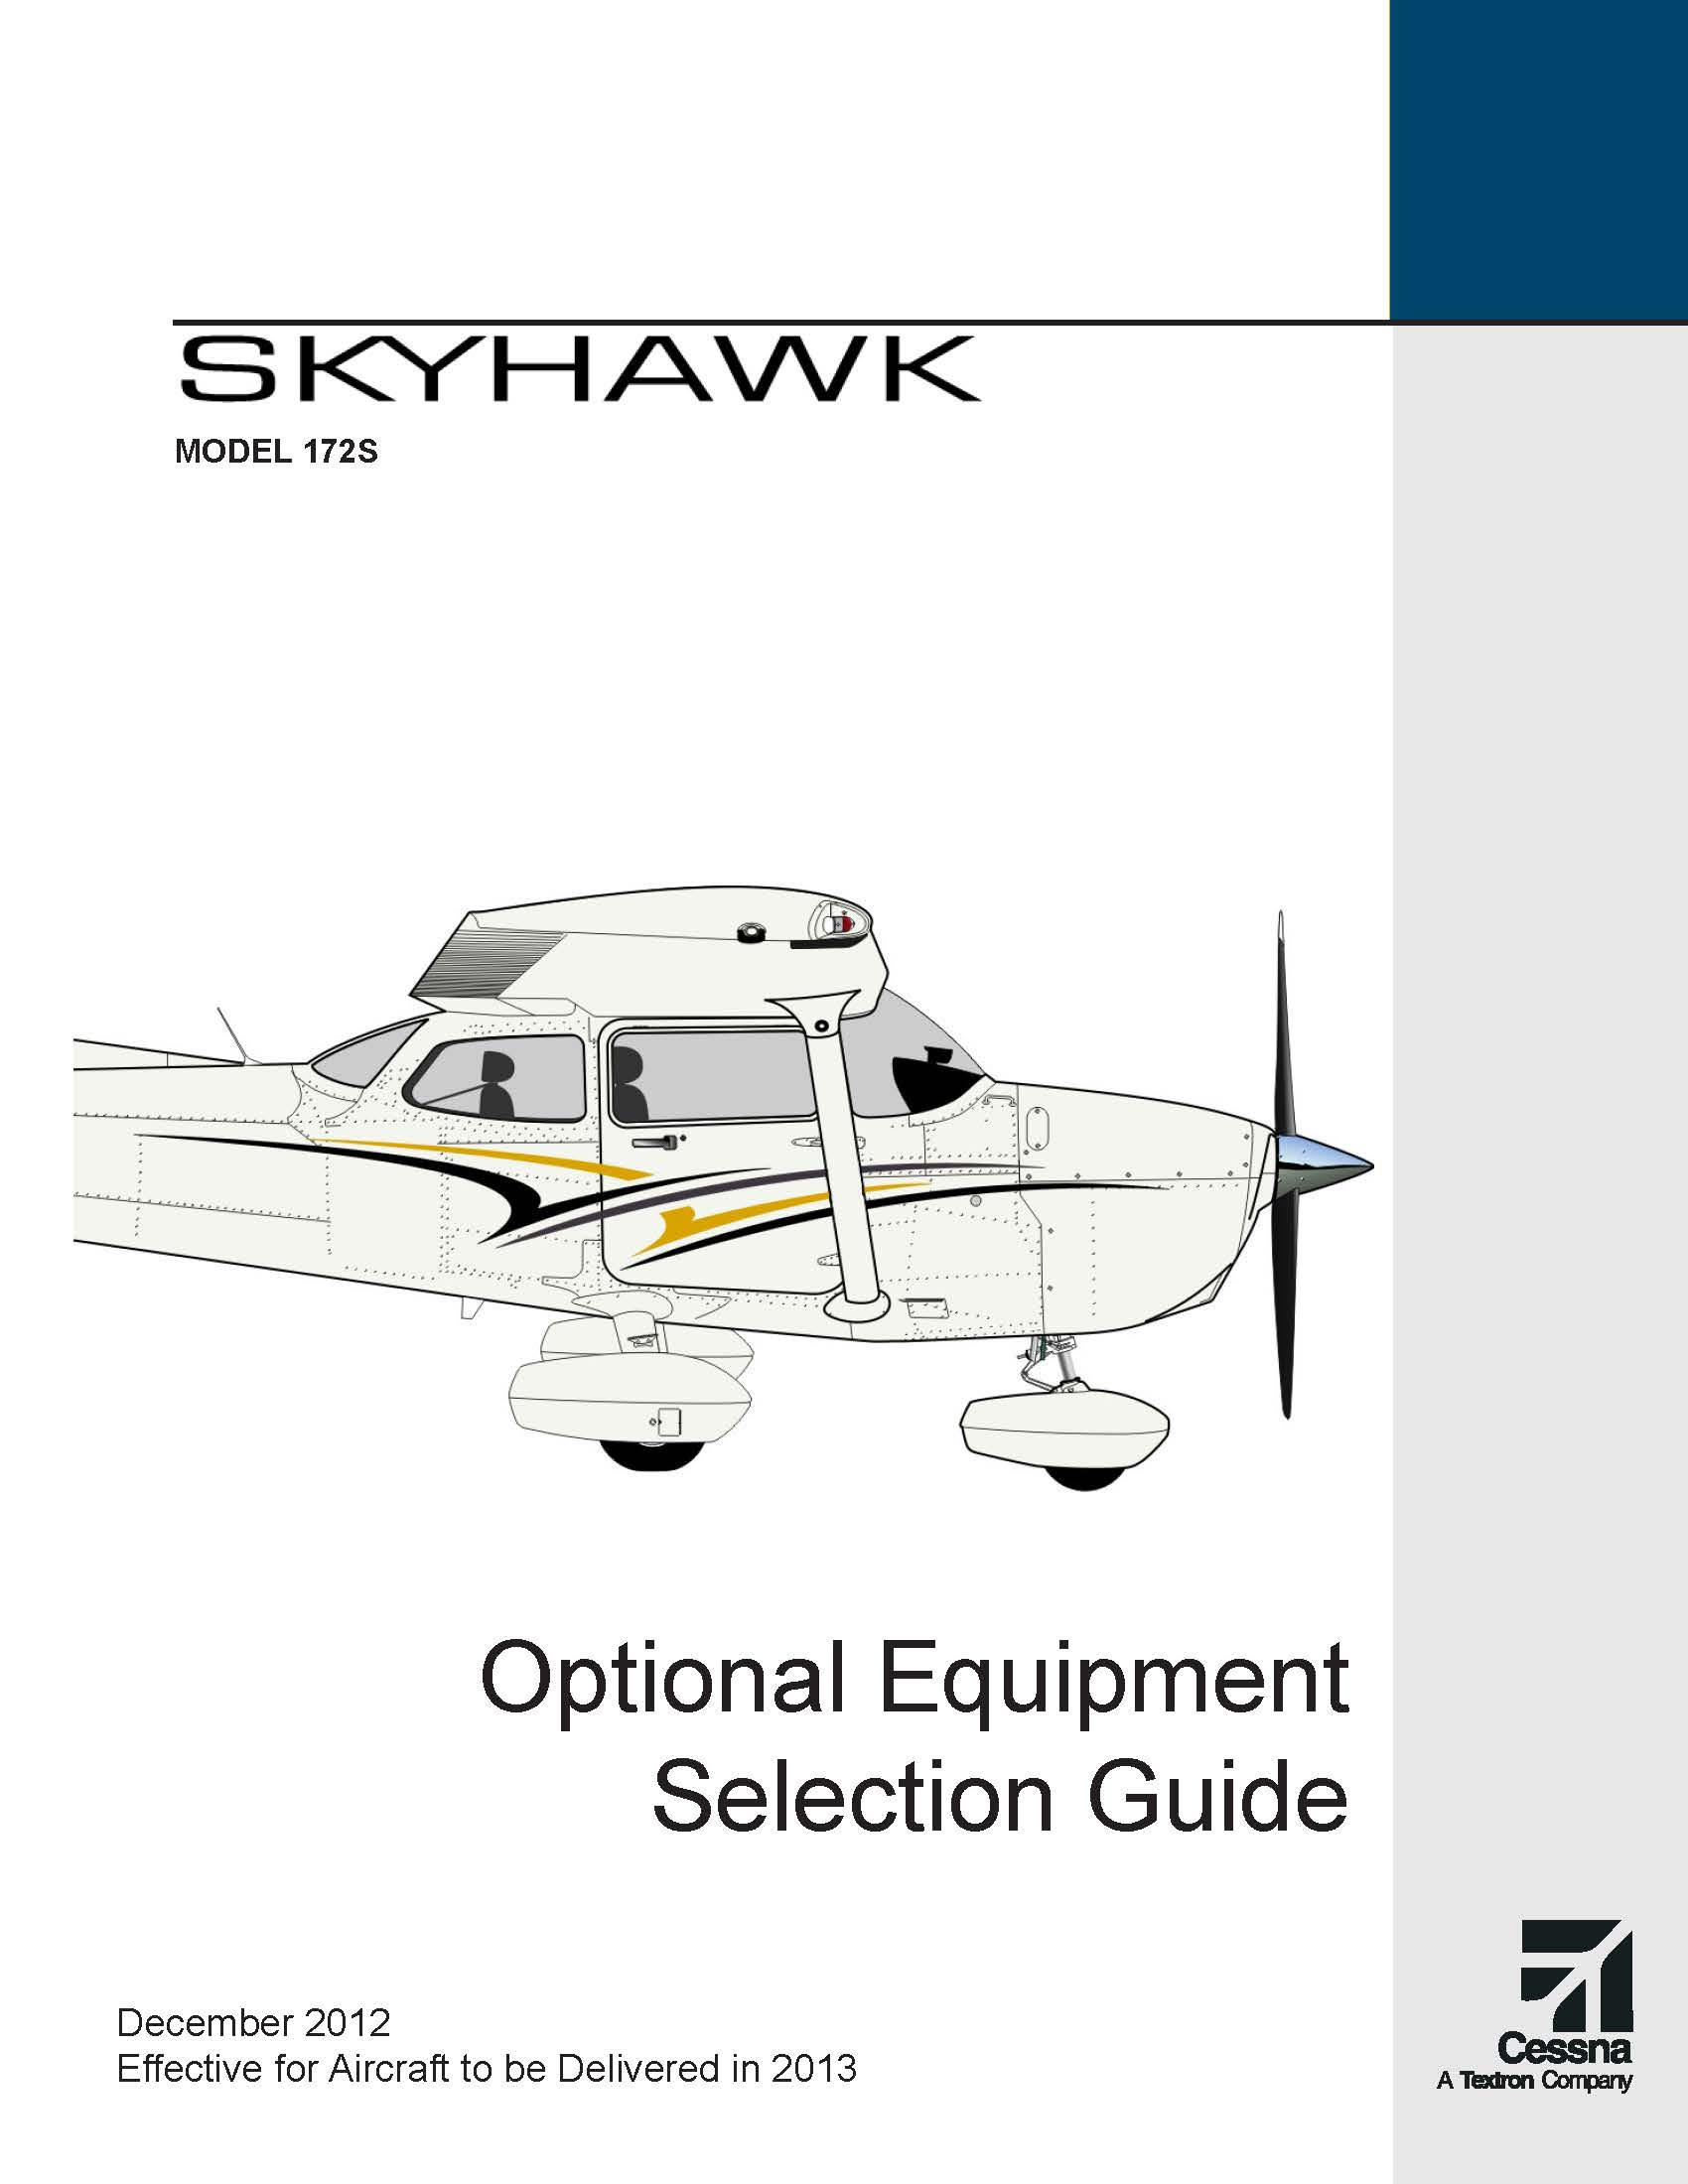 Cessna Skyhawk optional equipment guide